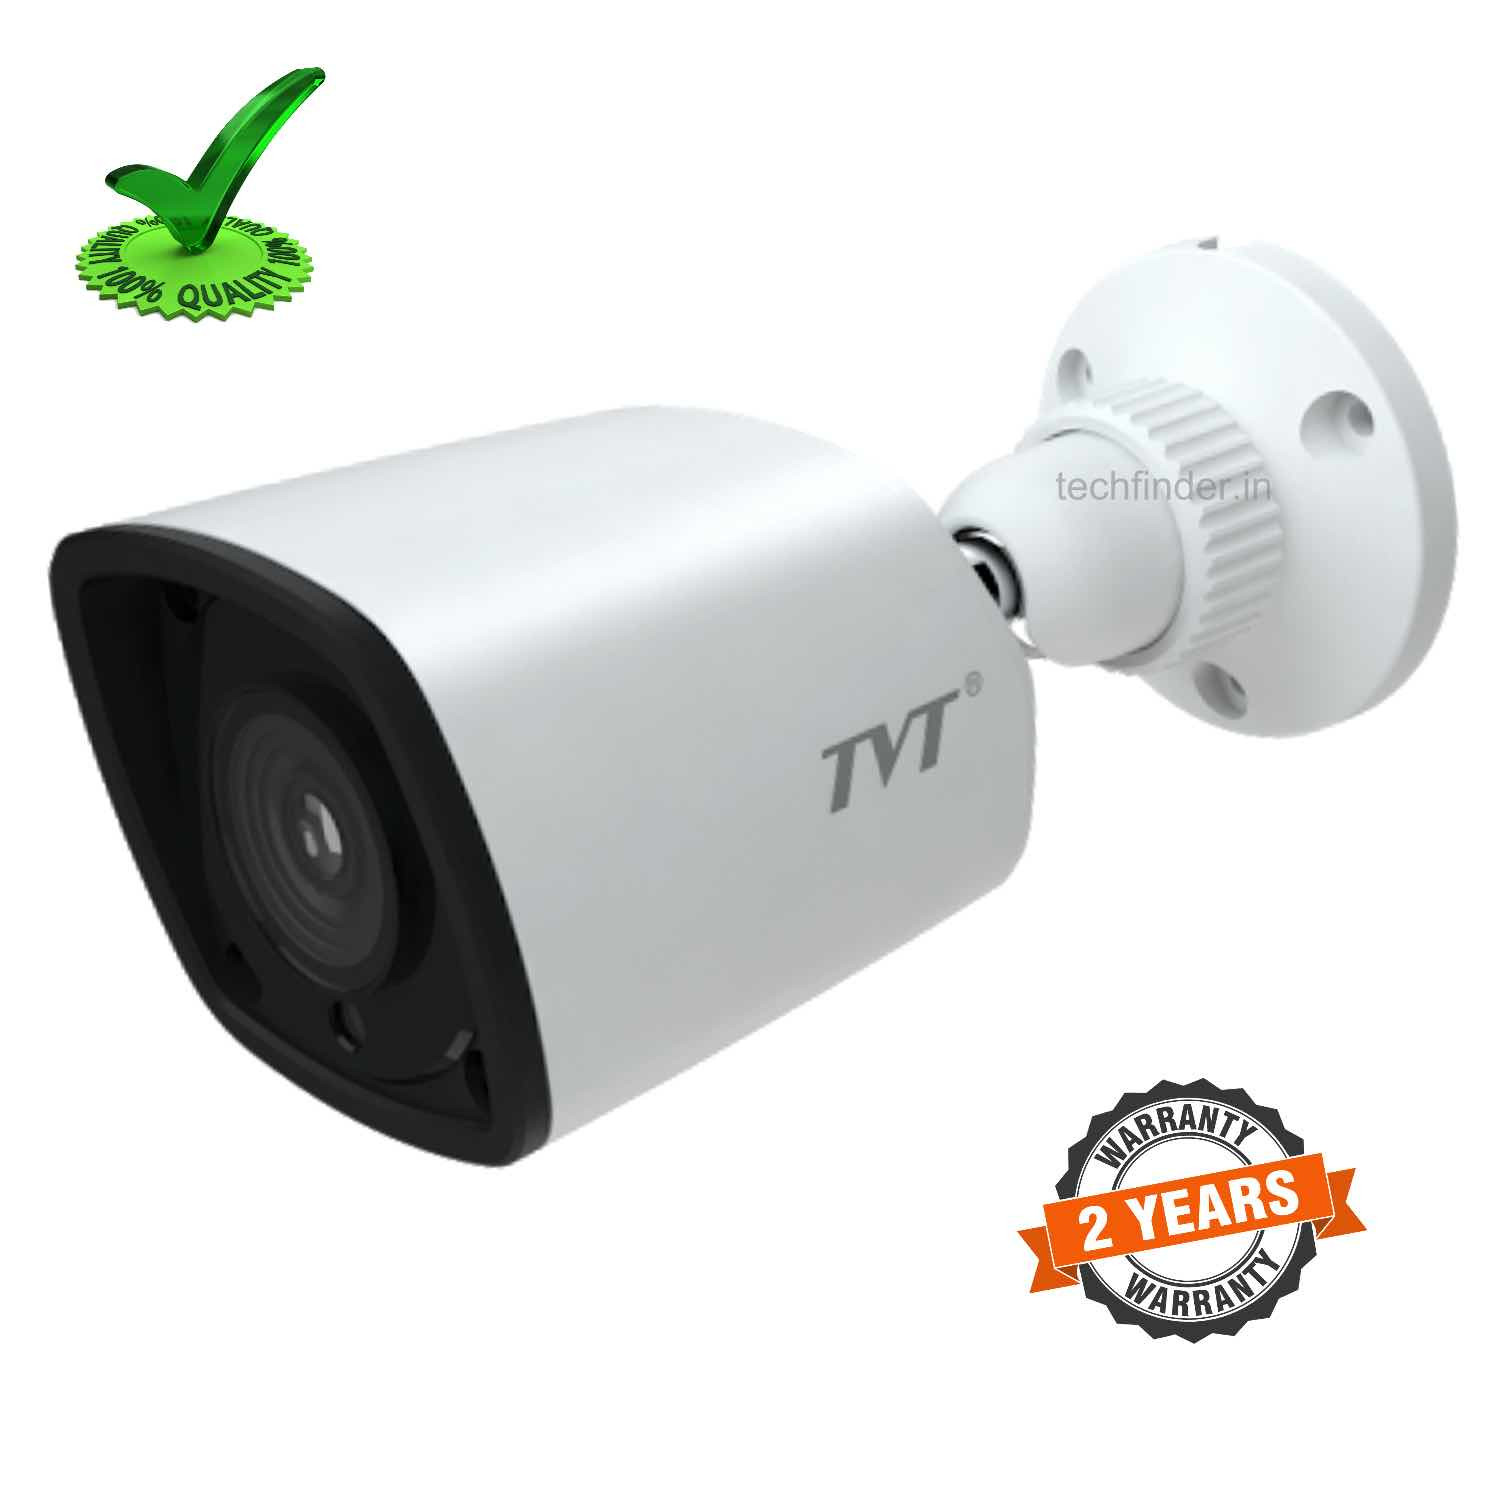 TVT TD 7421AS 2 MP HD IR water proof Bullet Camera